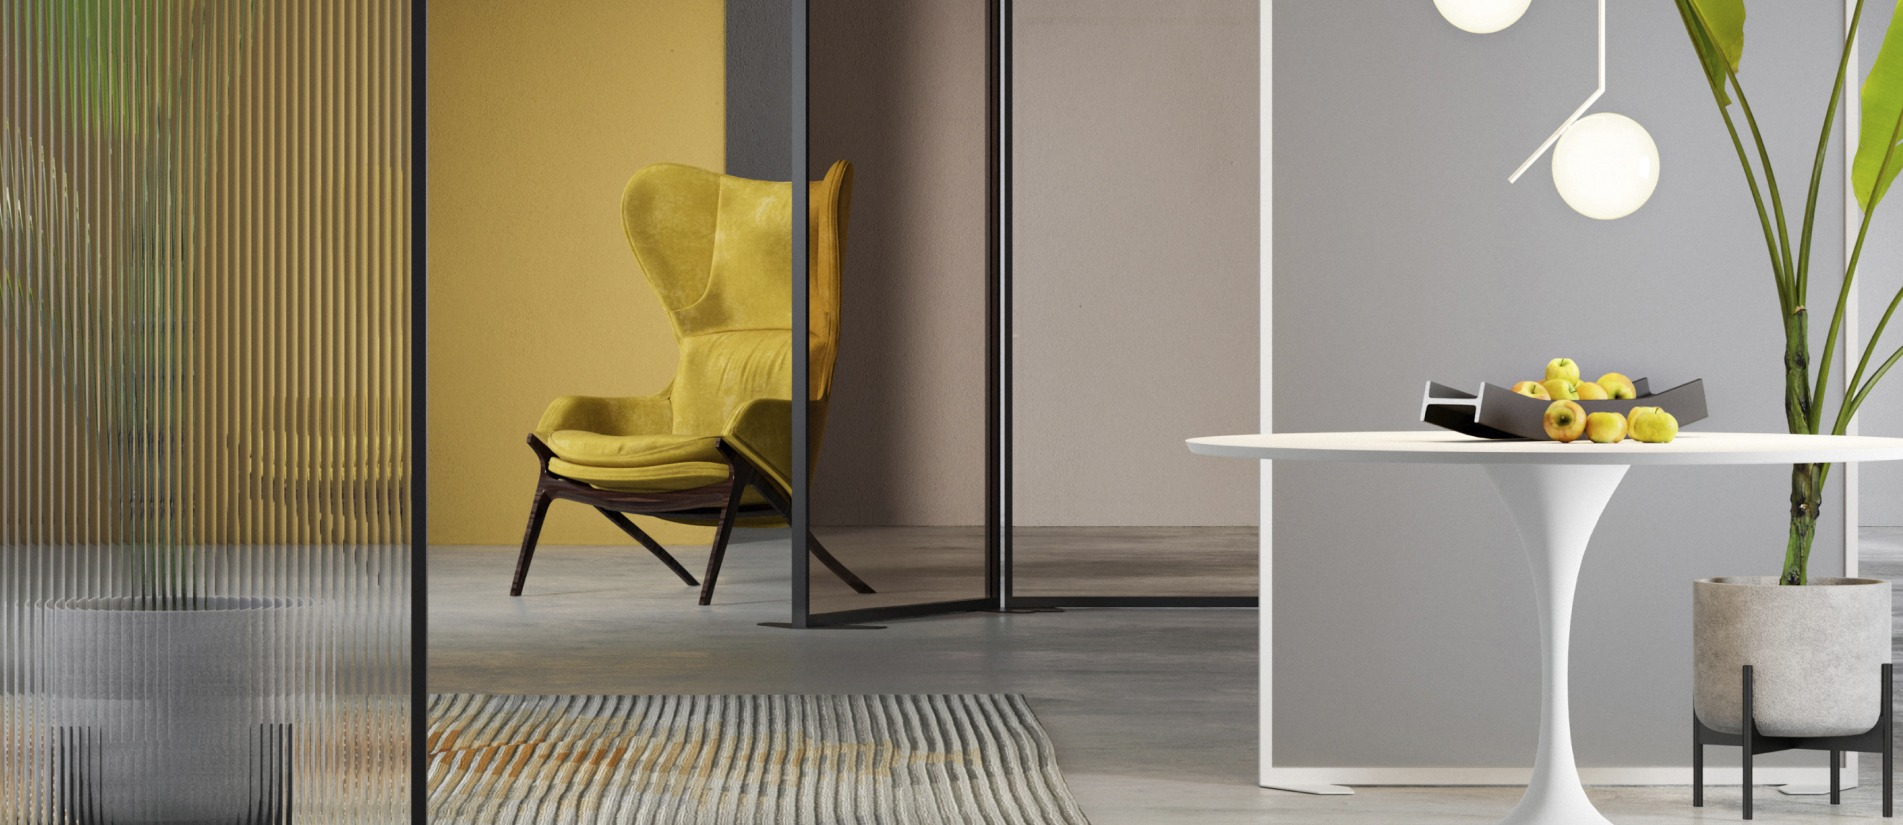 Free standing floor dividers between offices with a yellow chair and table with apples